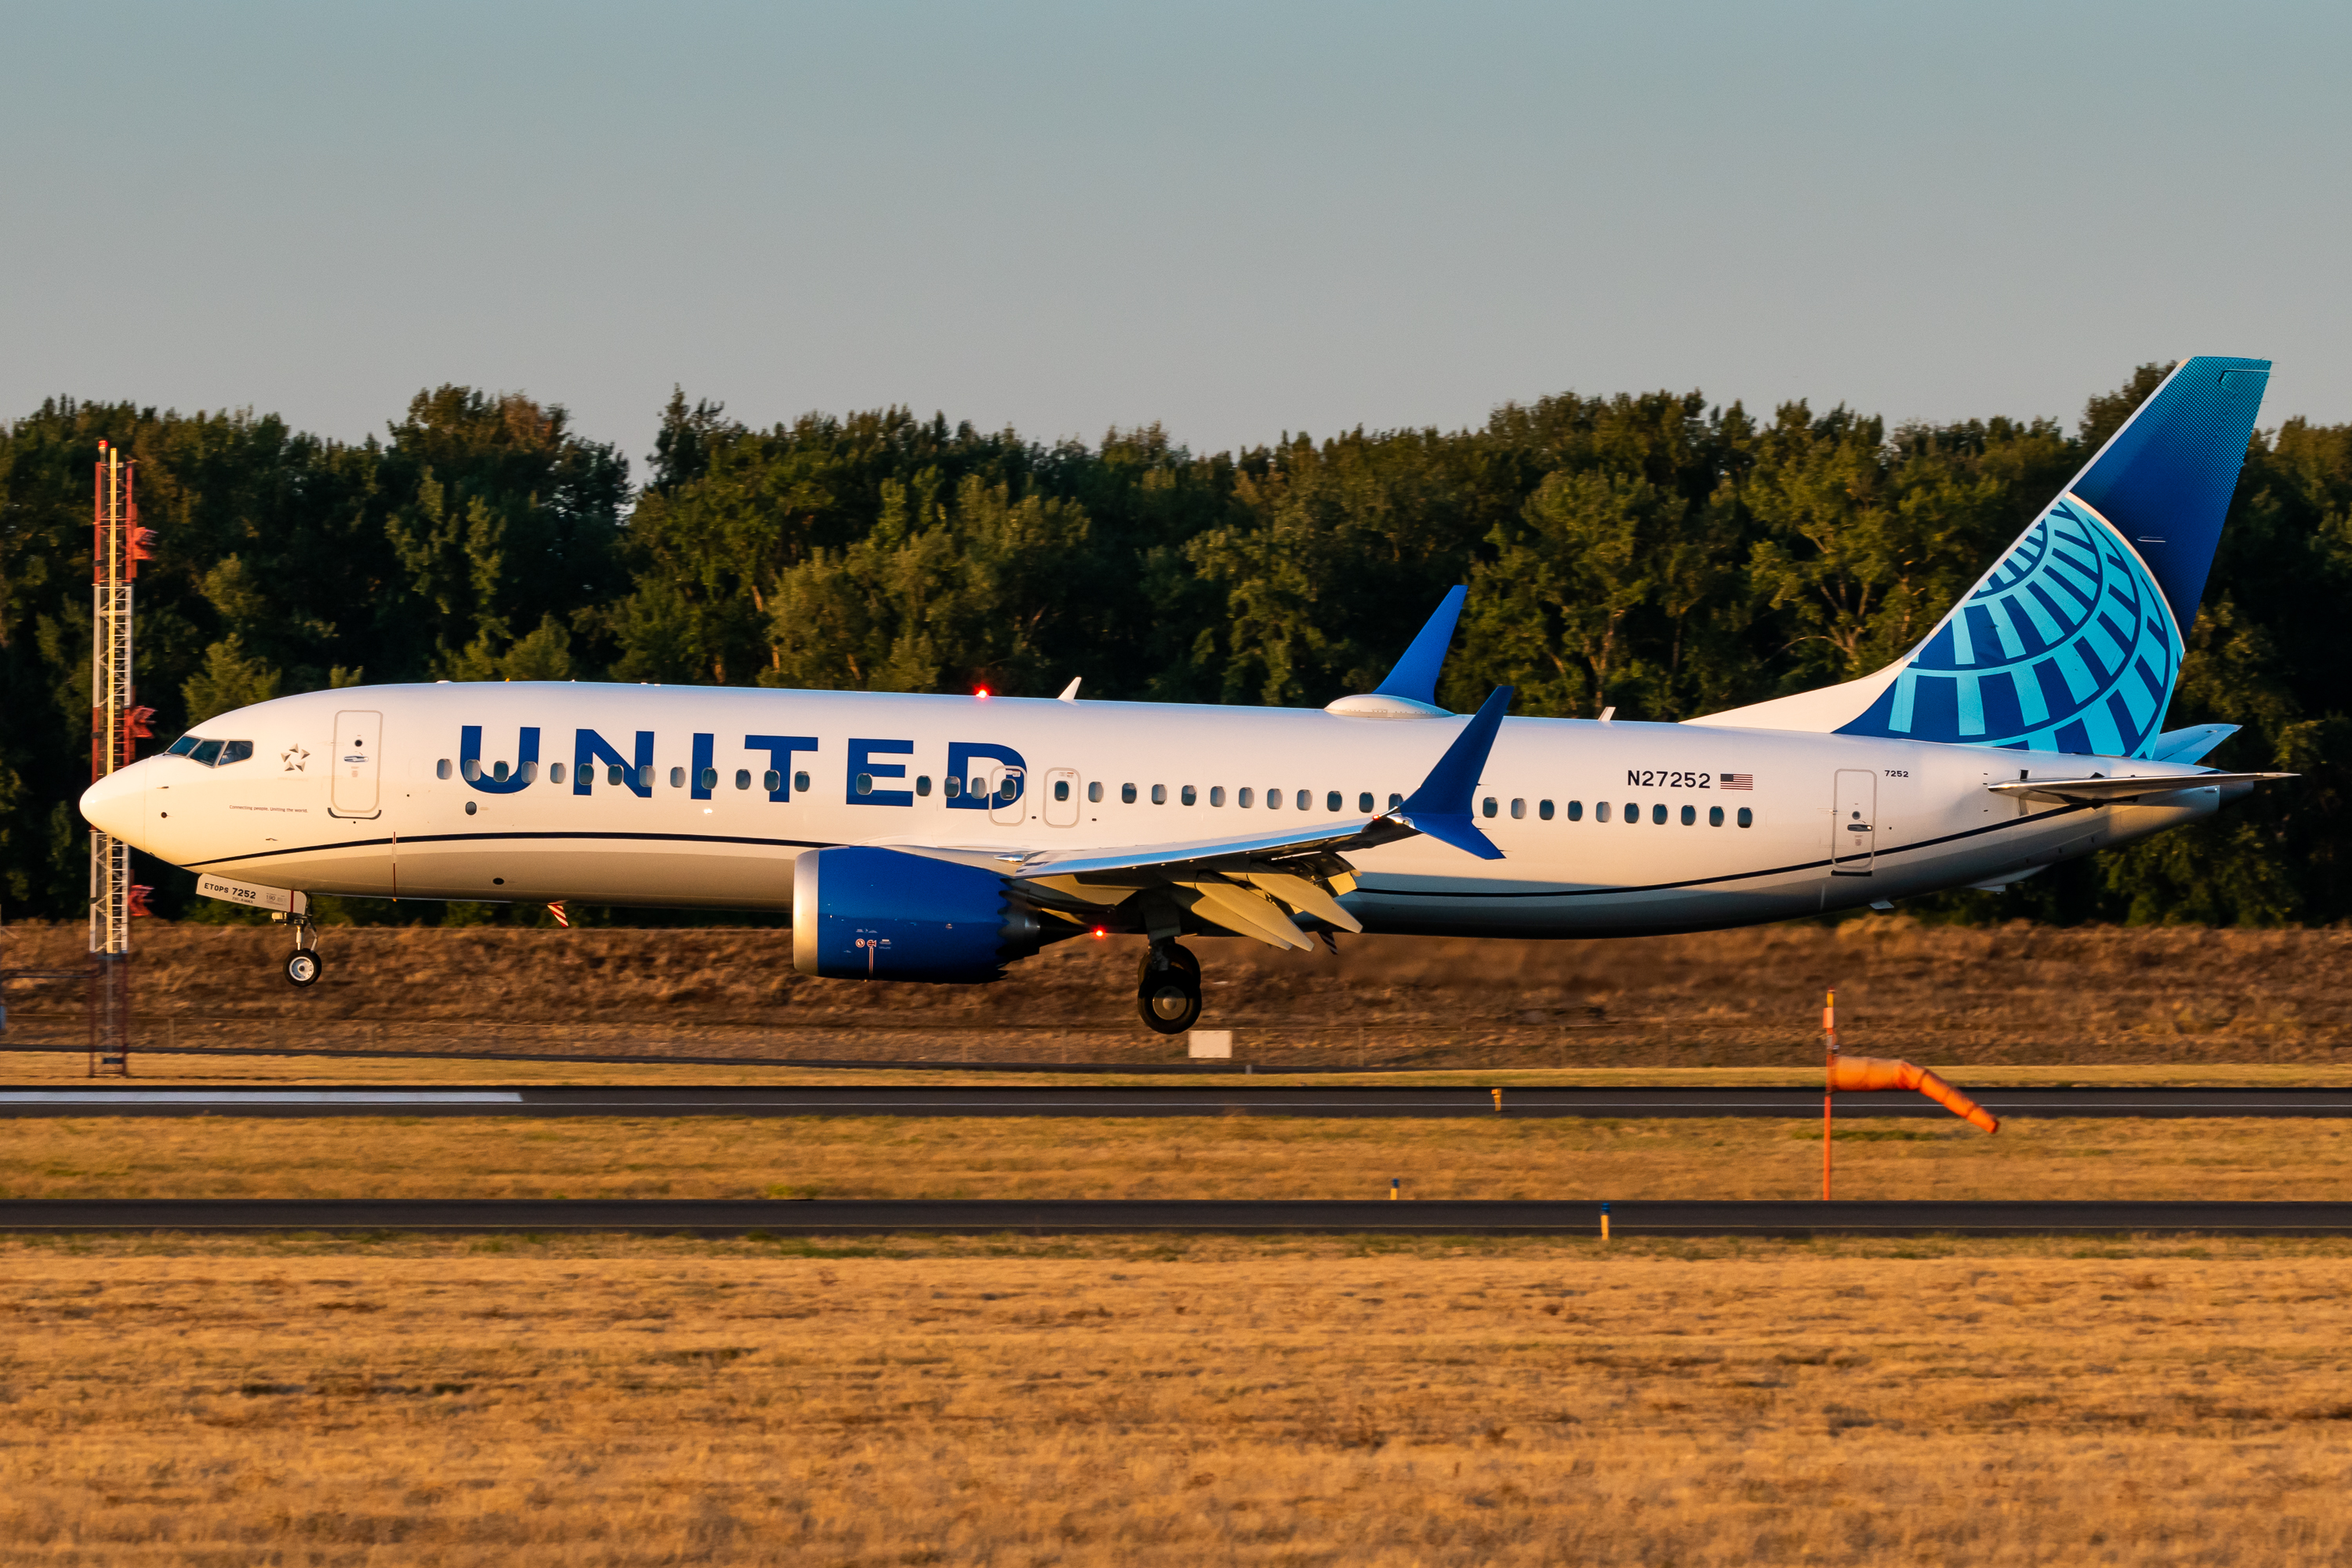 Photo of N27252 - United Airlines Boeing 737 MAX 8 at PDX